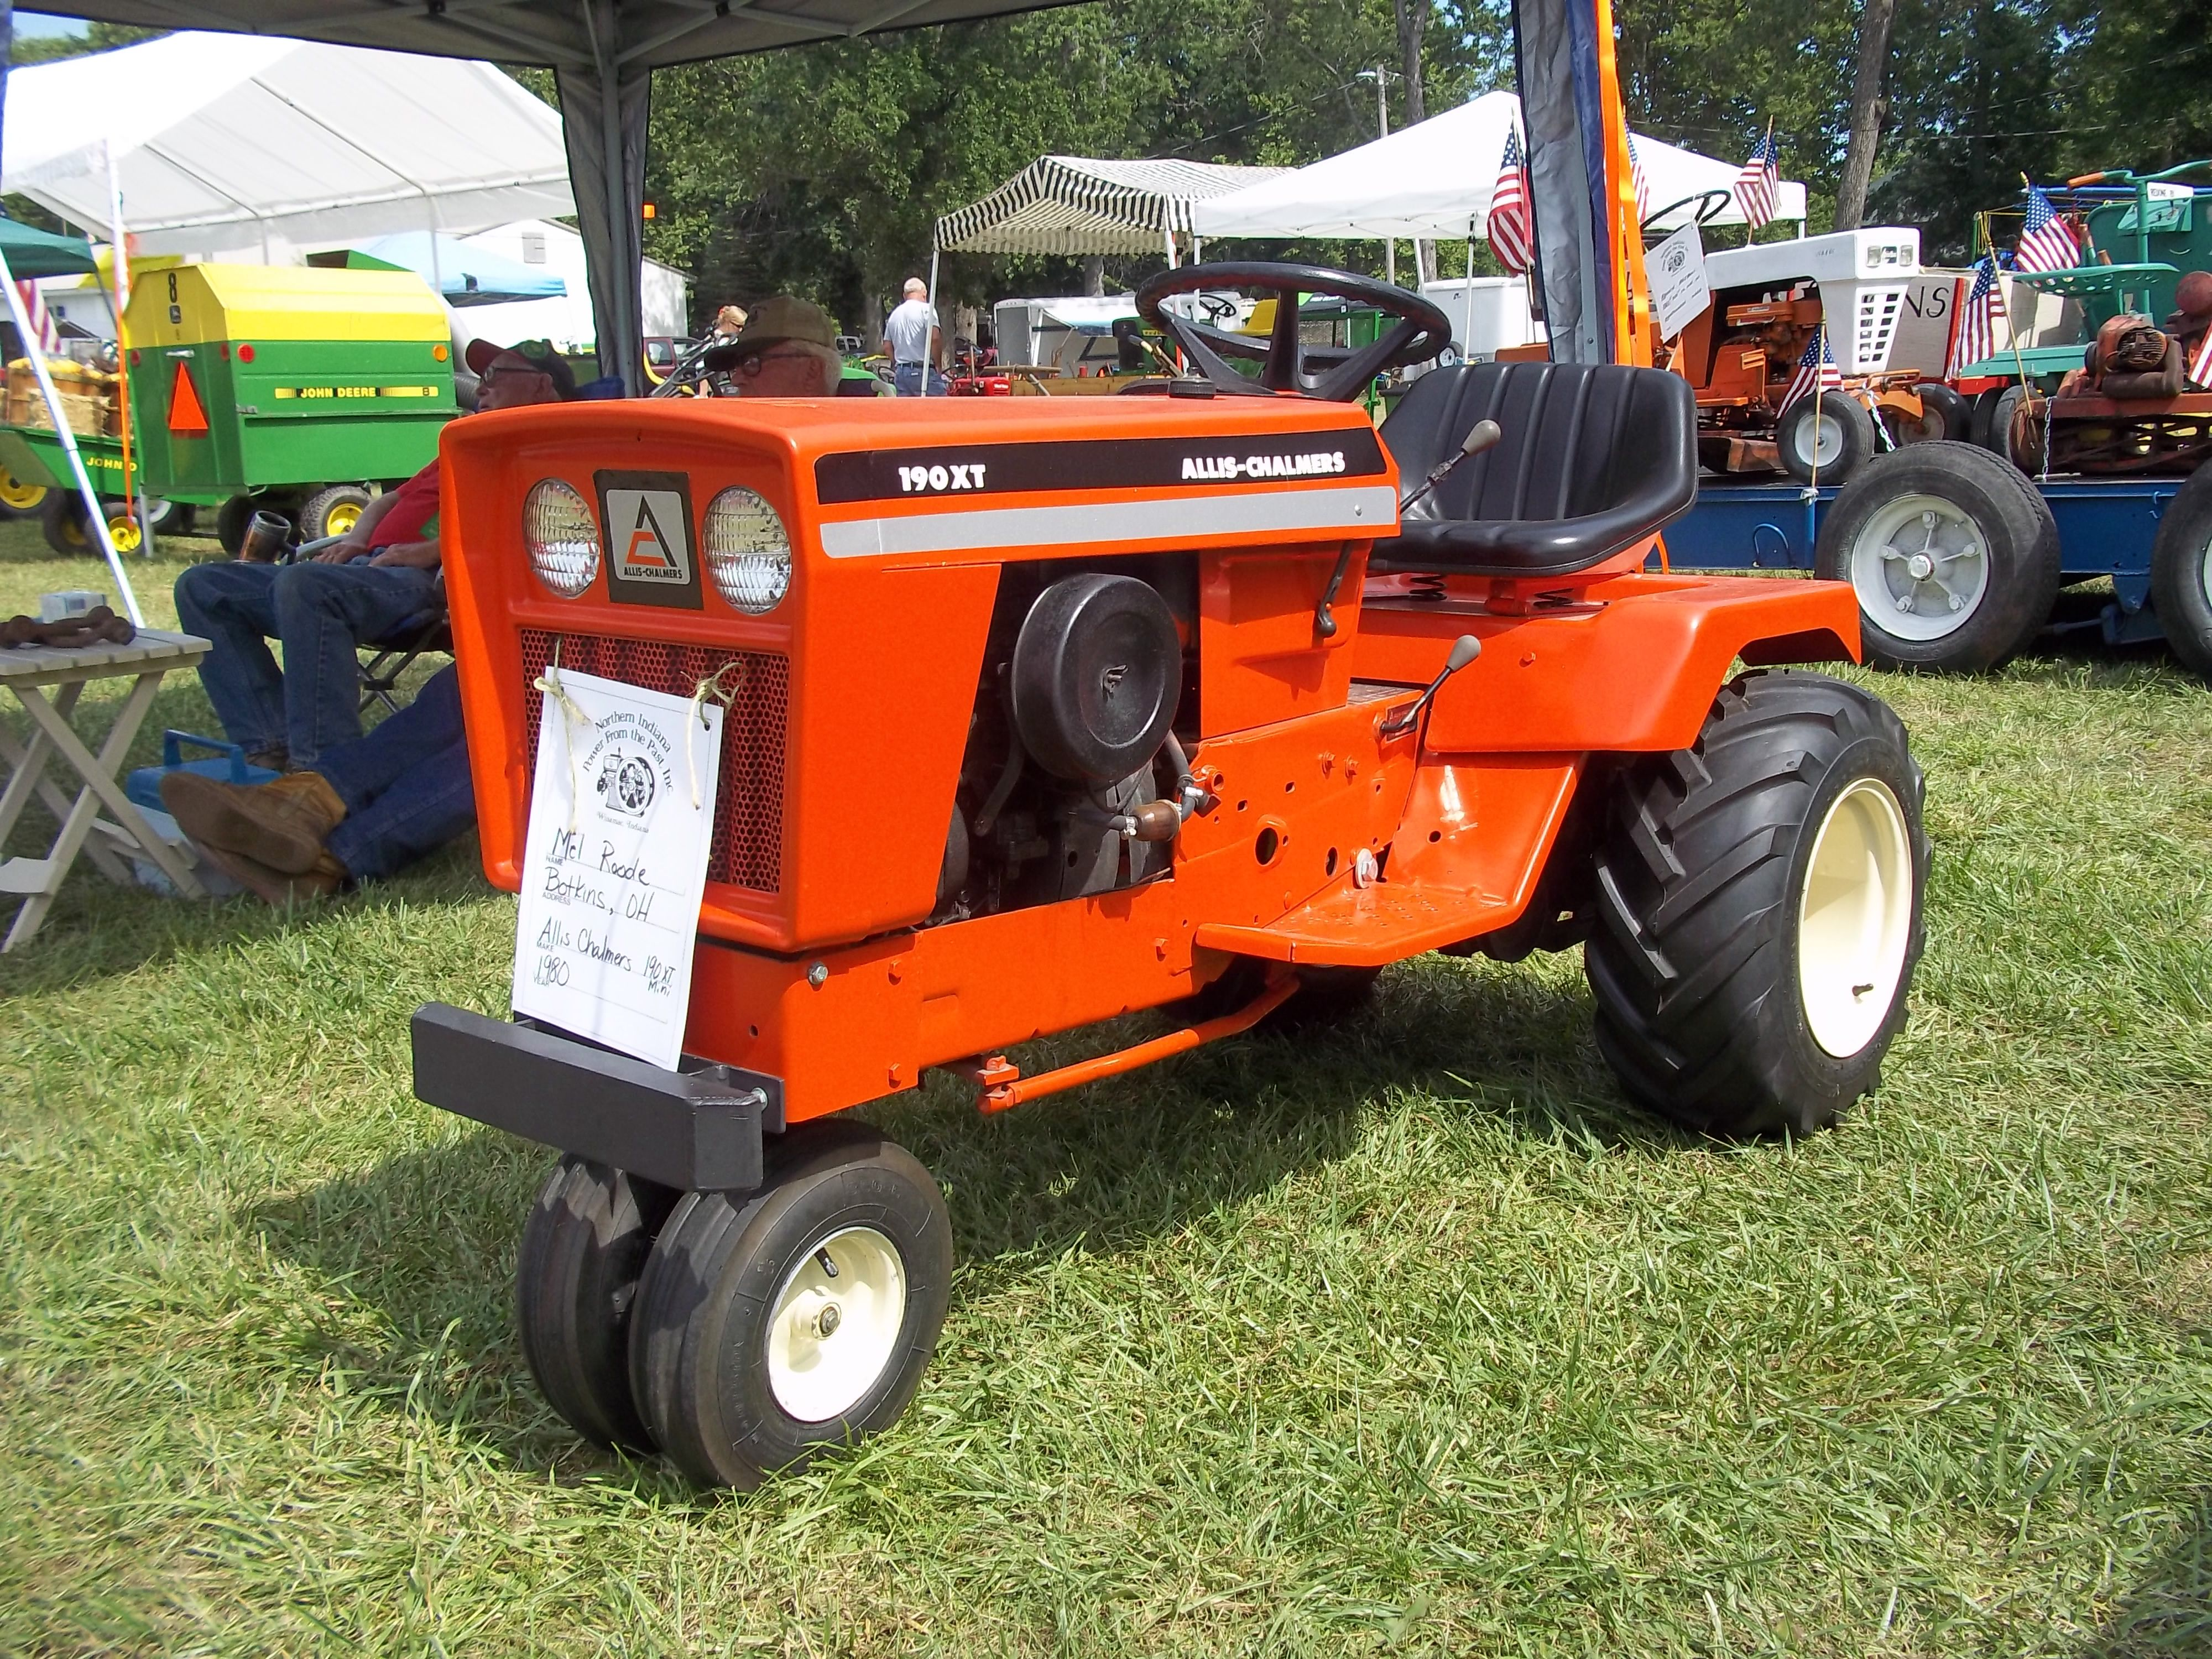 Allis Chalmers 190 XT mini tricycle lawn tractor | AC-My ...